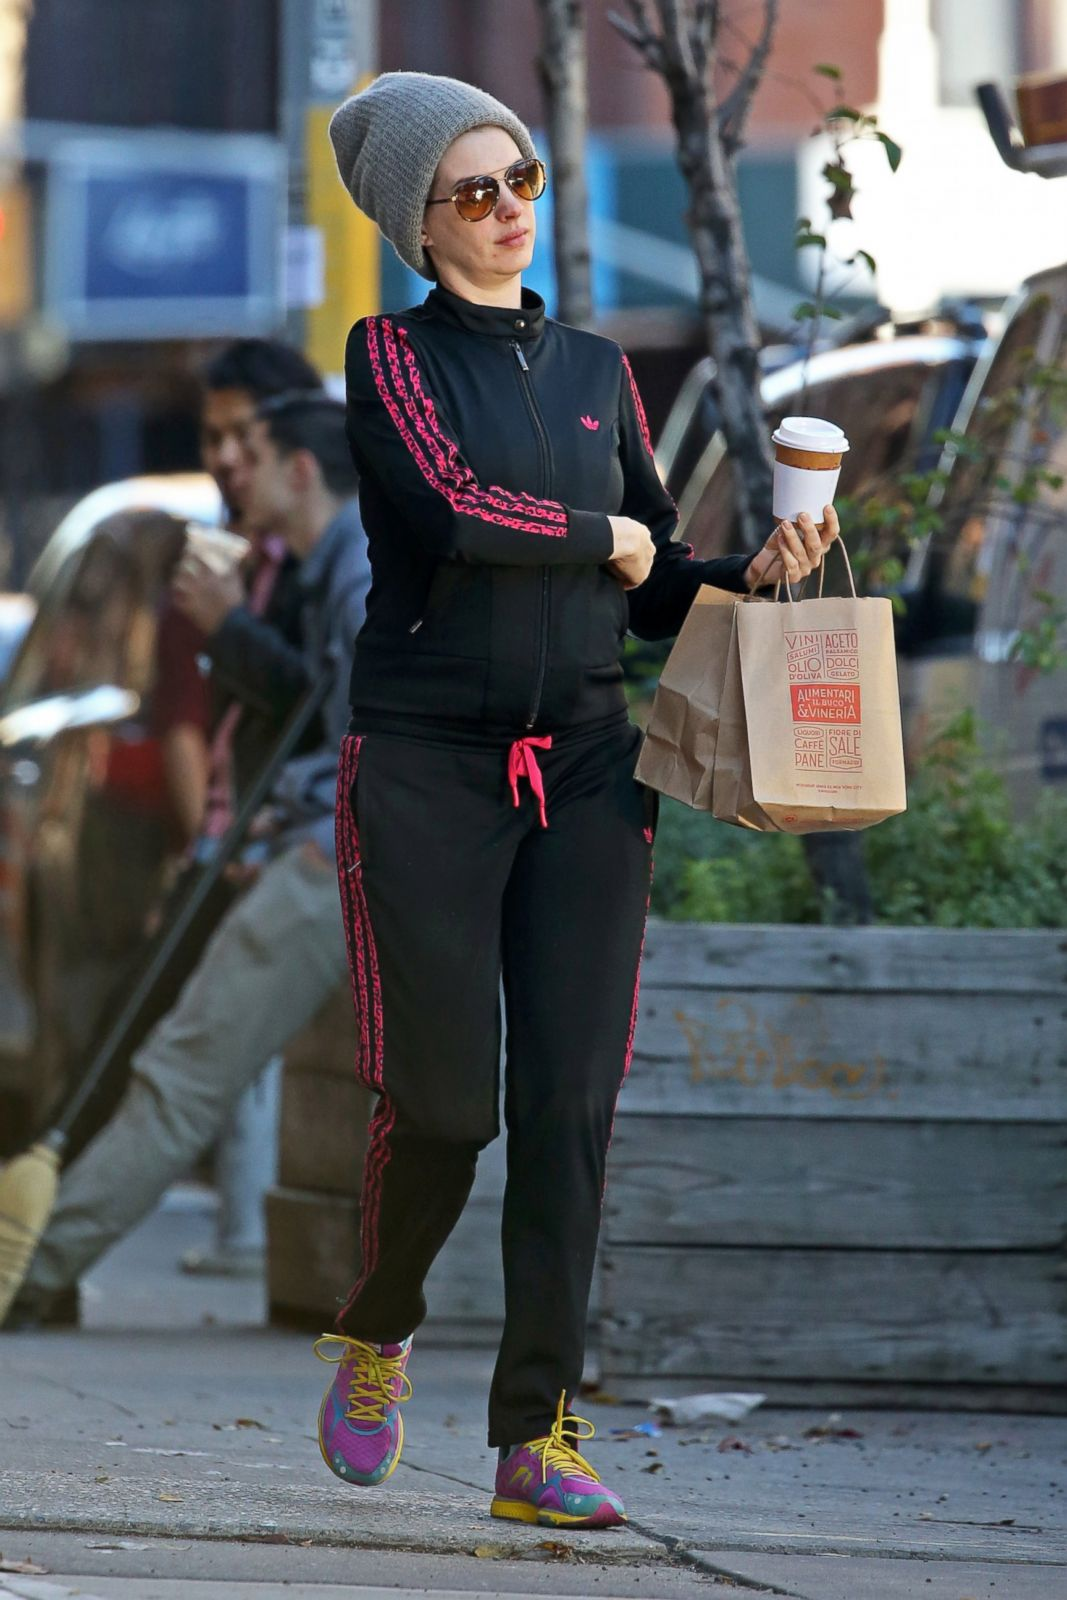 Budget Energy Top Up >> Anne Hathaway Stops for Coffee in NYC Picture | Celebrity ...